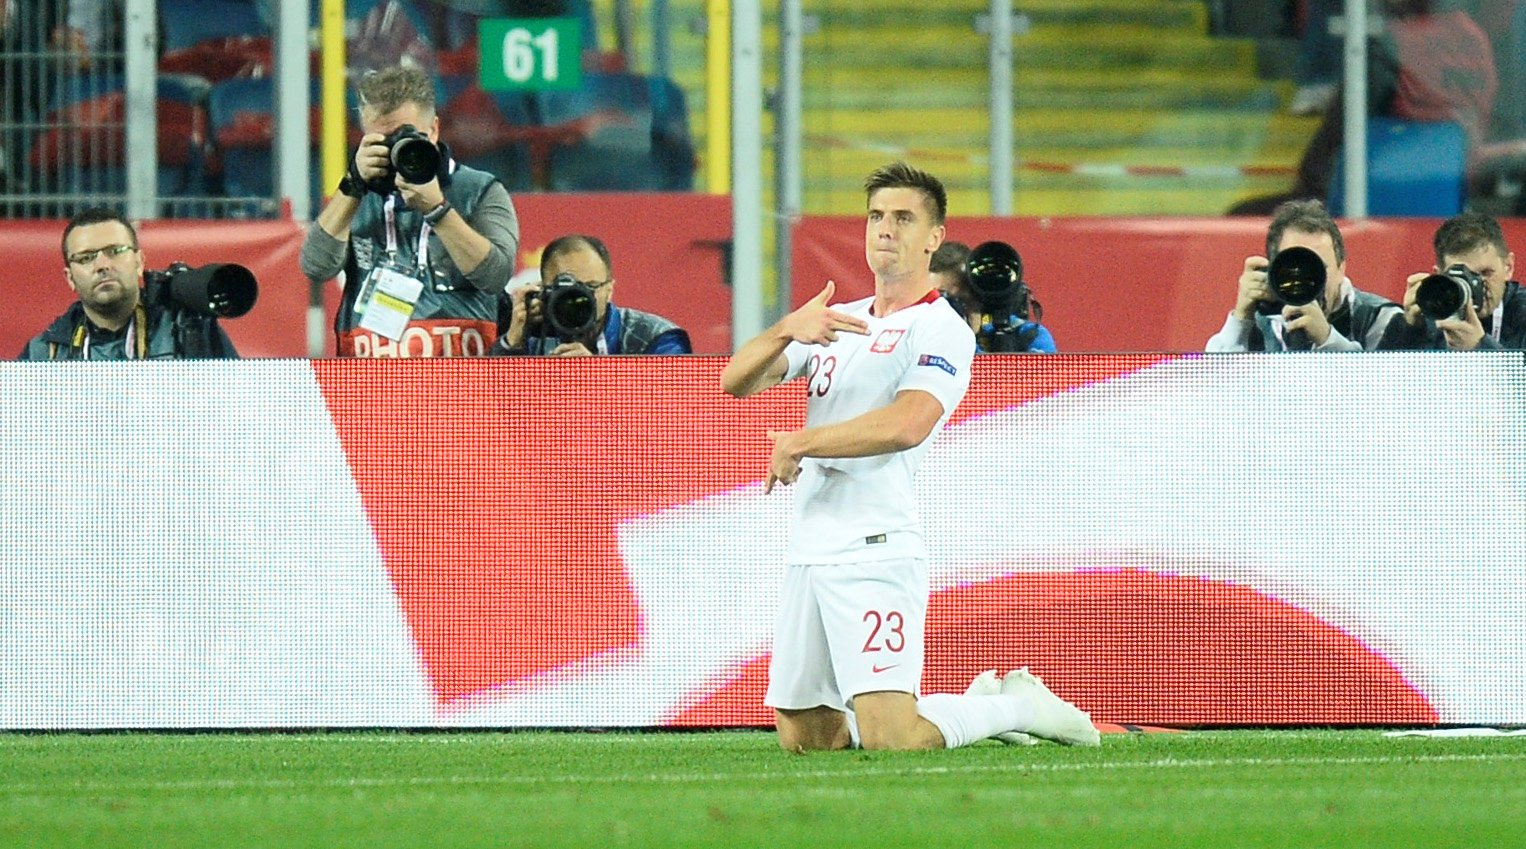 West Ham mustn't be deterred in pursuit of Krzysztof Piatek, the man to finally rid them of Andy Carroll